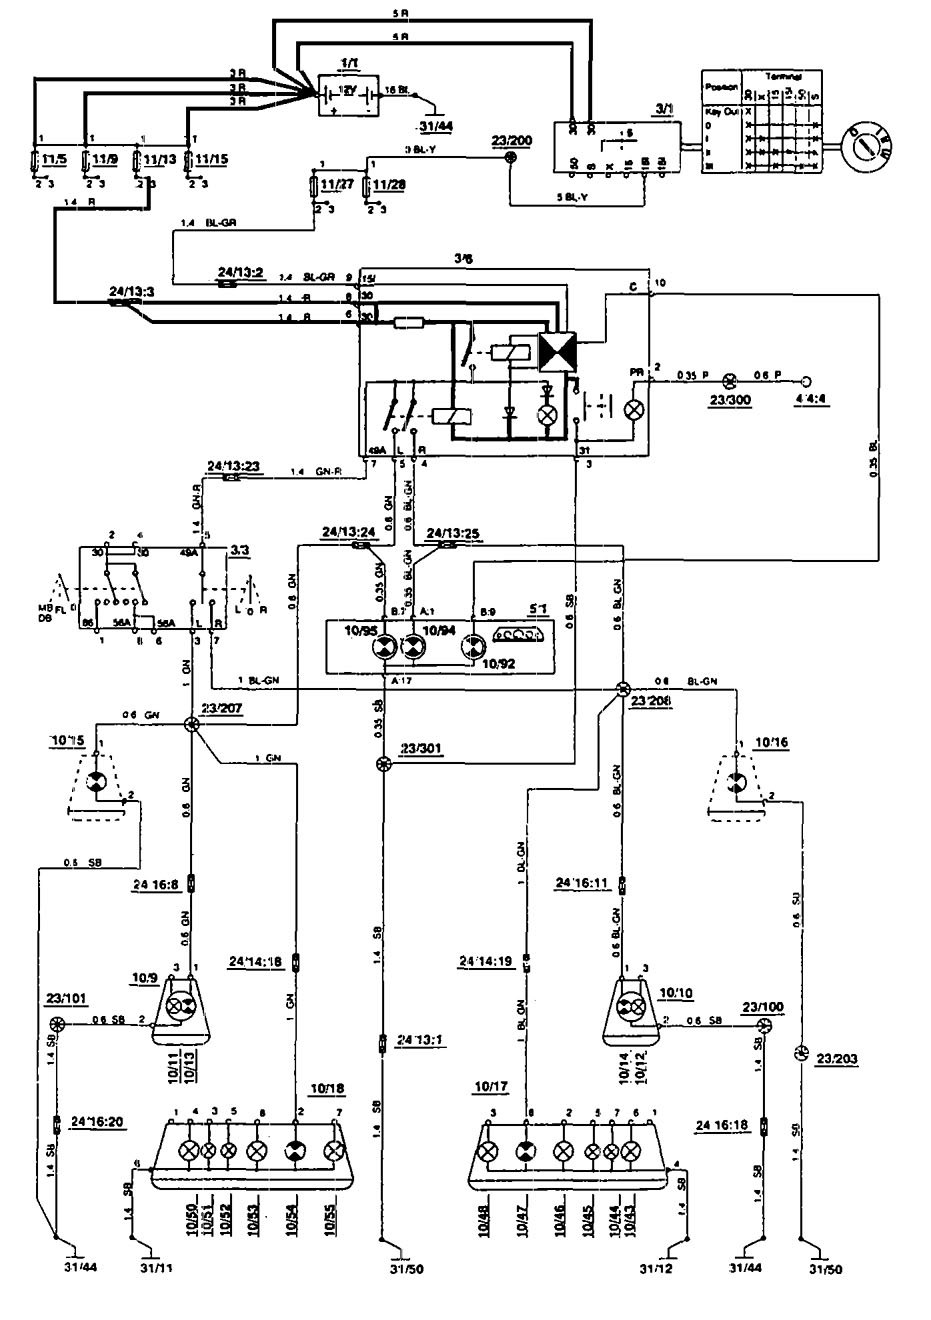 Volvo 850 Car Stereo Wiring Diagram : Volvo  wiring diagrams turn signal lamp